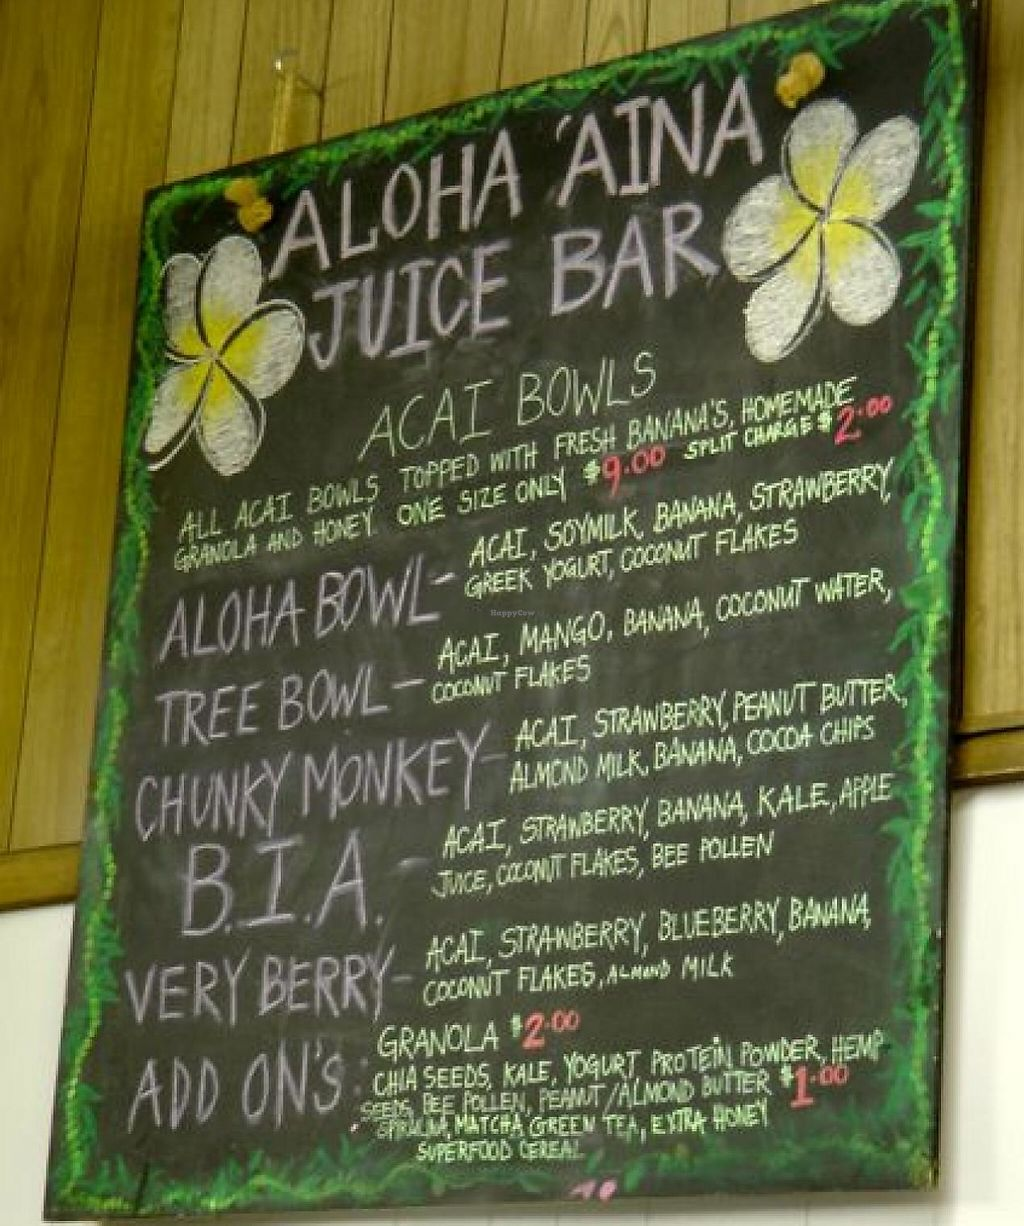 """Photo of Aloha 'Aina Juice Cafe  by <a href=""""/members/profile/trinitybourne"""">trinitybourne</a> <br/>Lots of tasty bowls to eat! <br/> February 14, 2015  - <a href='/contact/abuse/image/35649/199586'>Report</a>"""